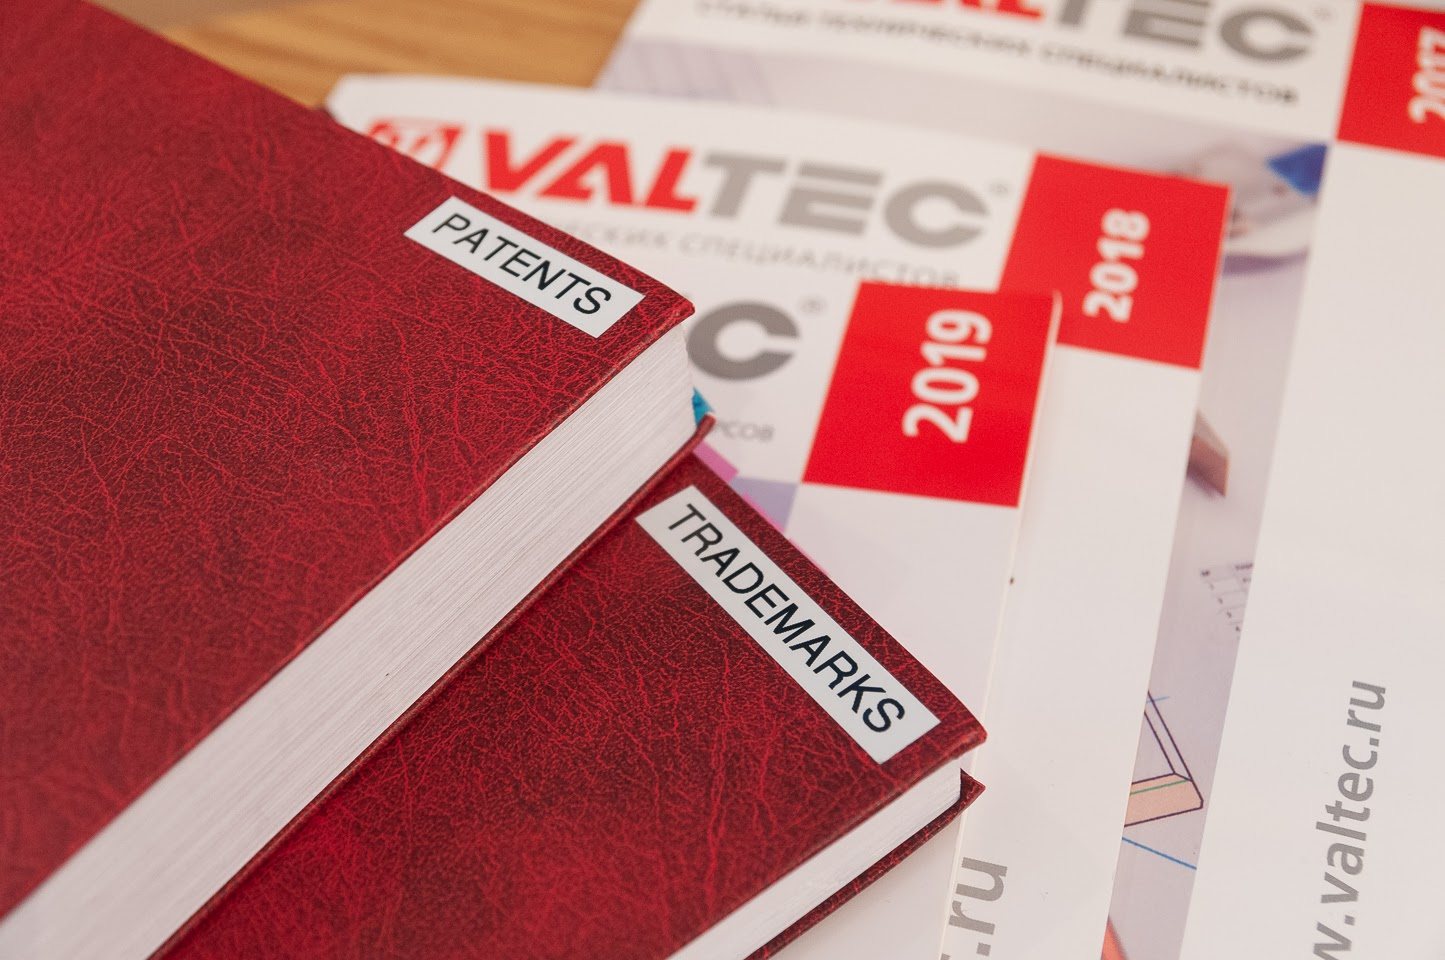 Alt VALTEC`s documents